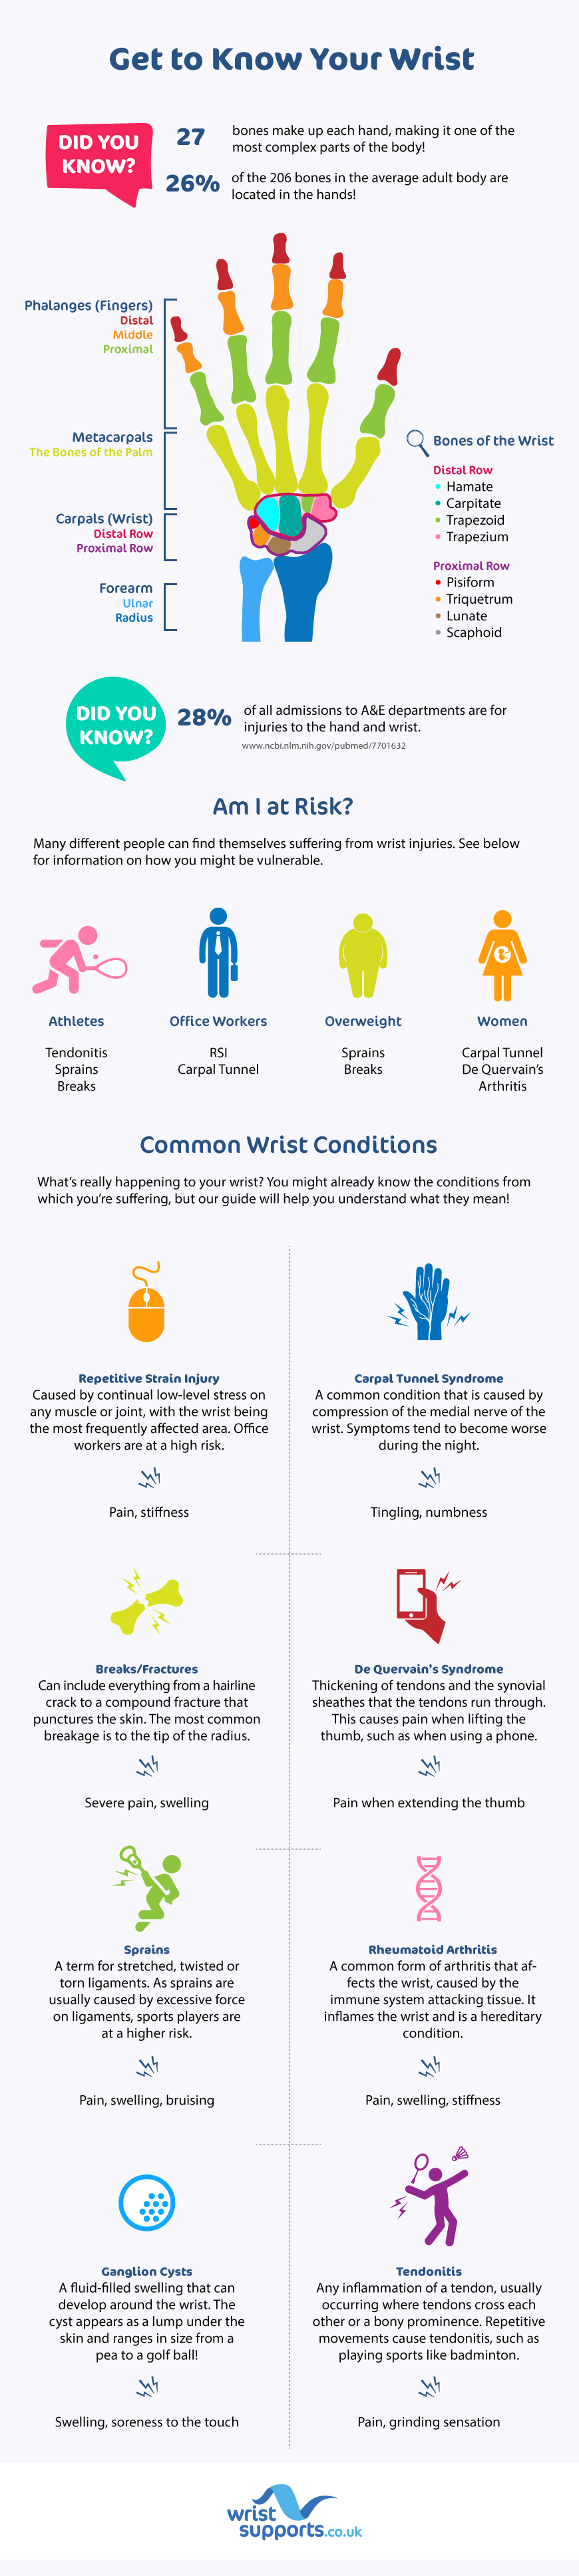 Get to Know Your Wrist